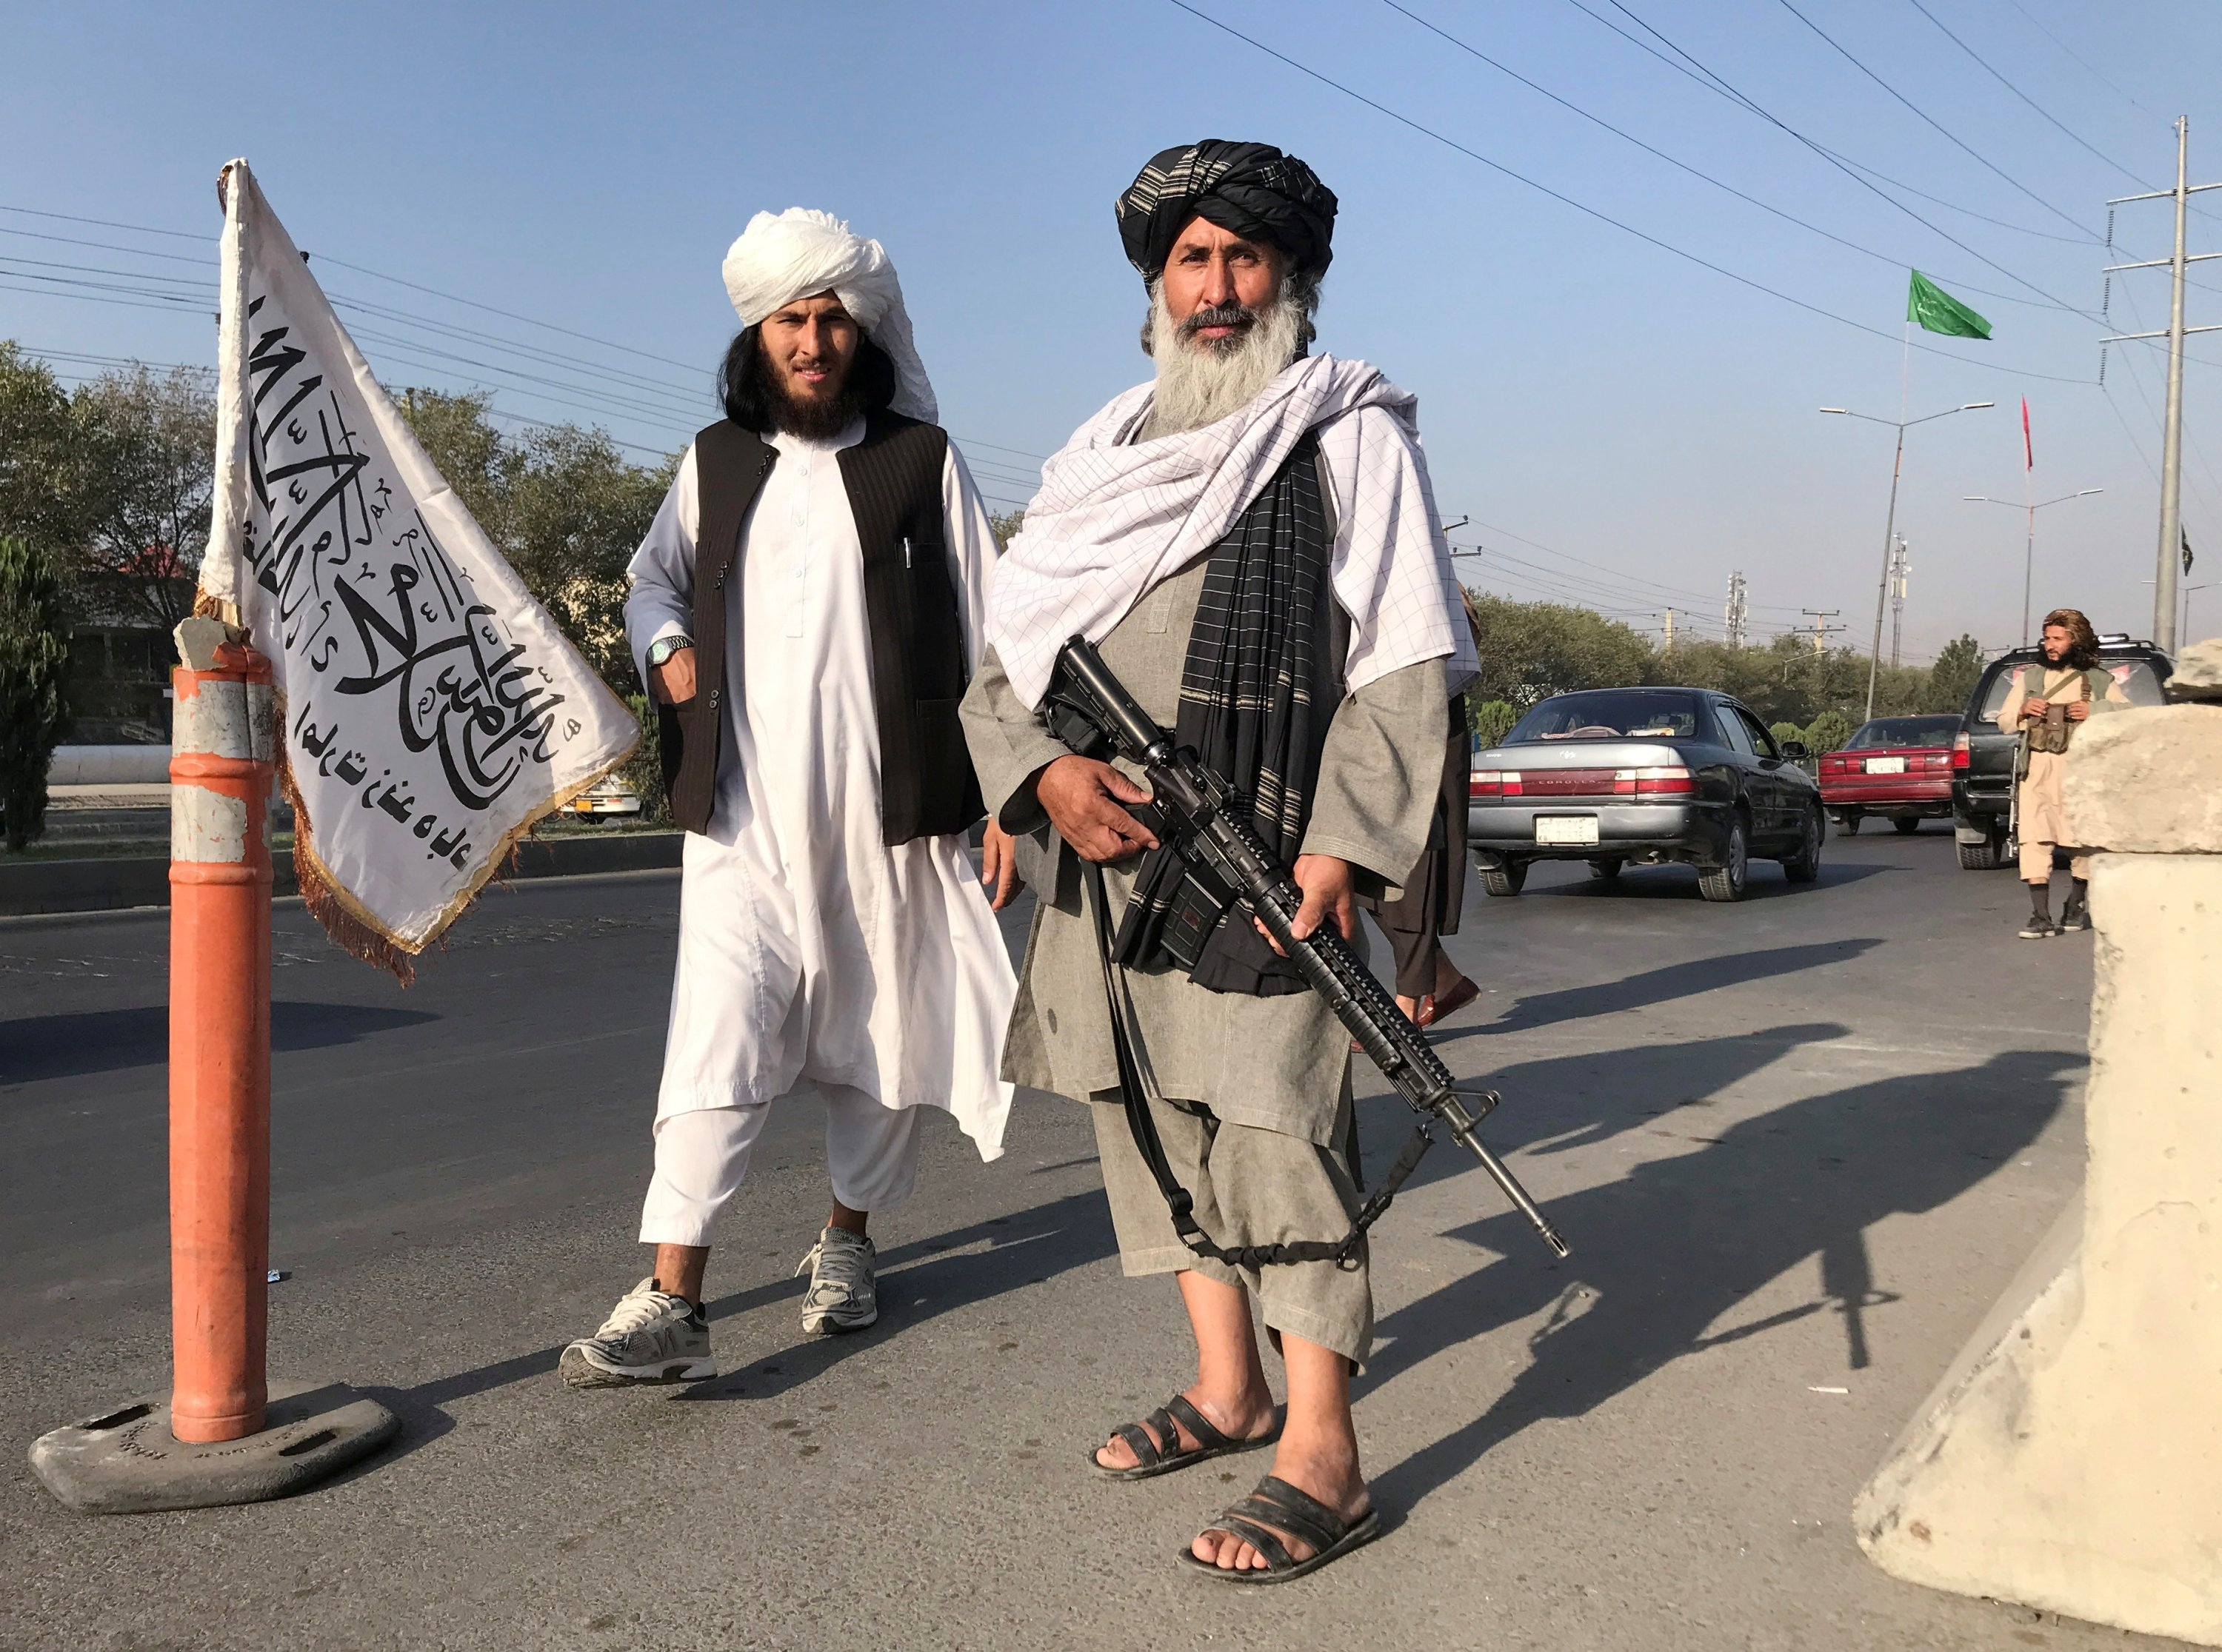 Taliban fighters stand outside the Interior Ministry in Kabul, Afghanistan, Aug. 16, 2021. (REUTERS Photo)